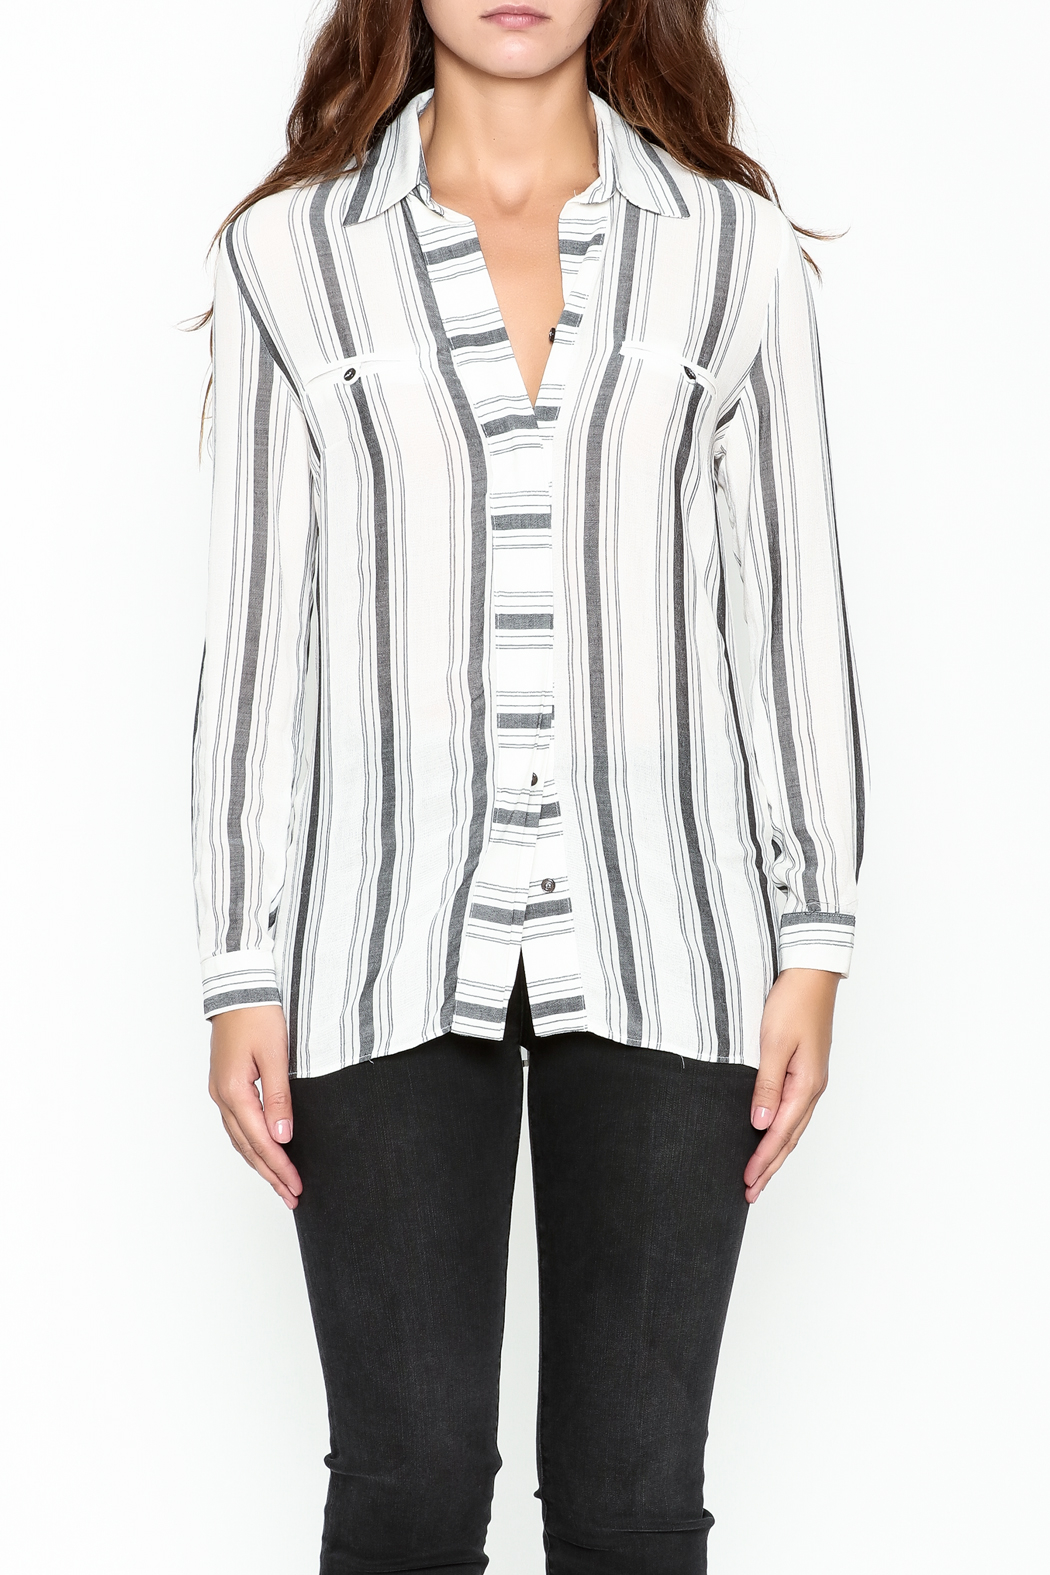 Marvy Fashion Striped Button Down Shirt - Front Full Image